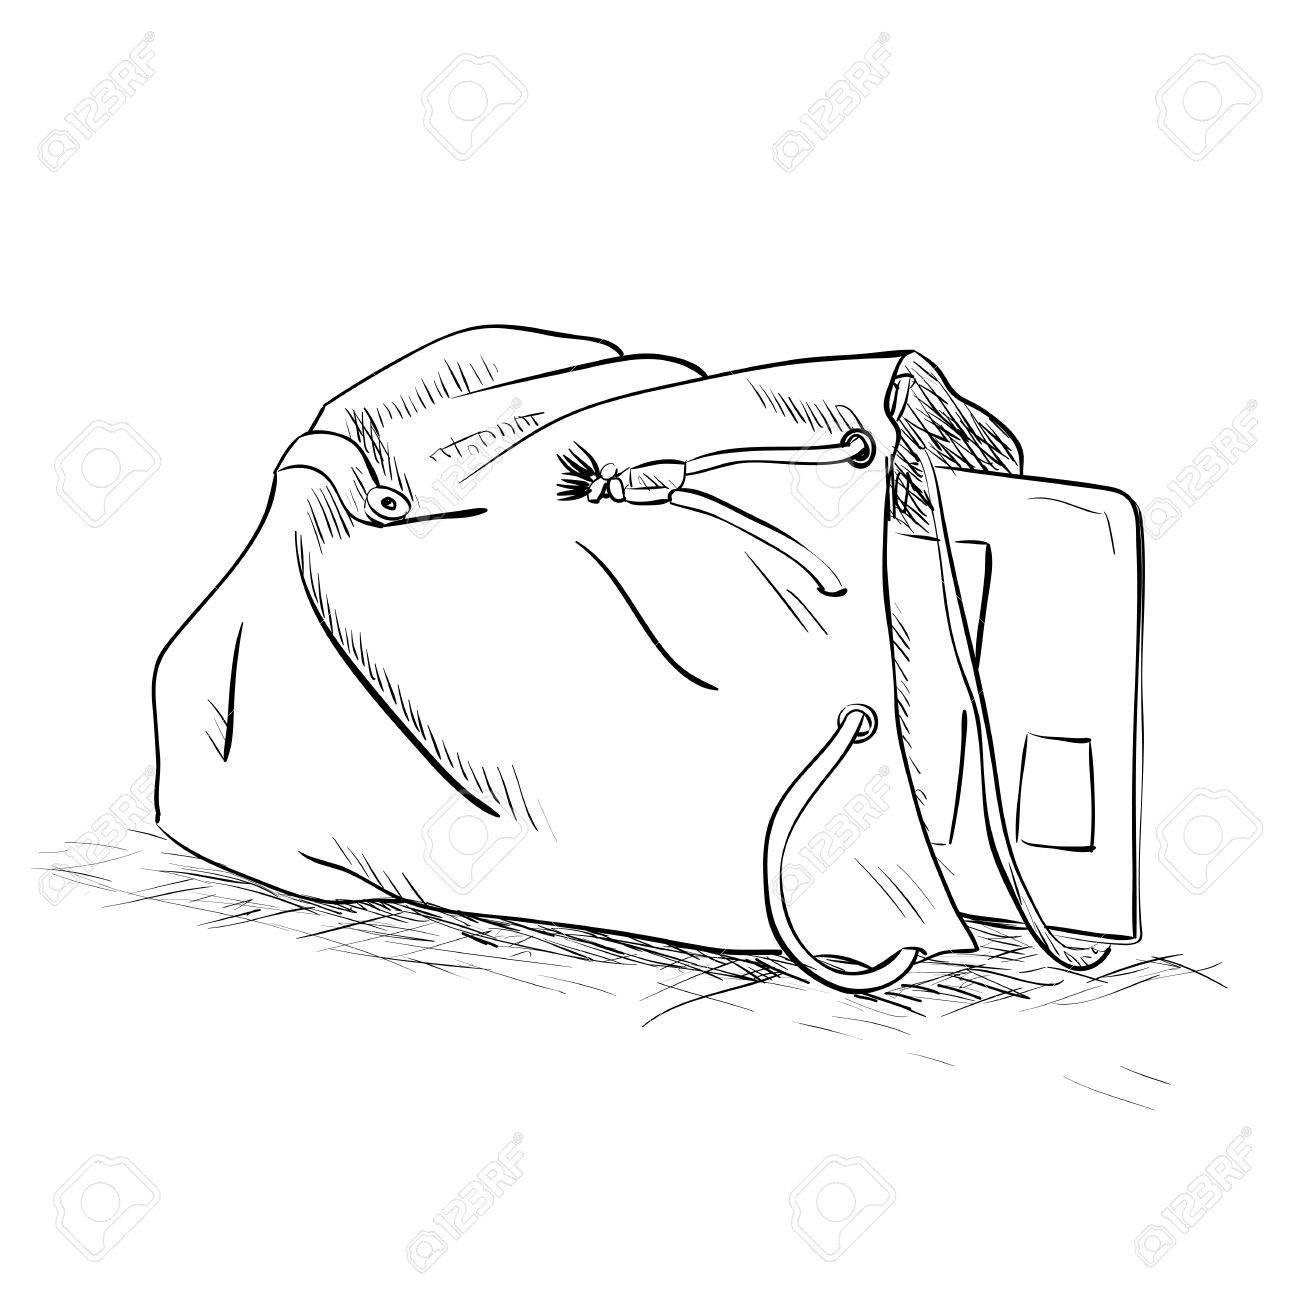 1300x1300 Vector Sketch Bag With A Tablet Inside. Hand Draw Illustration